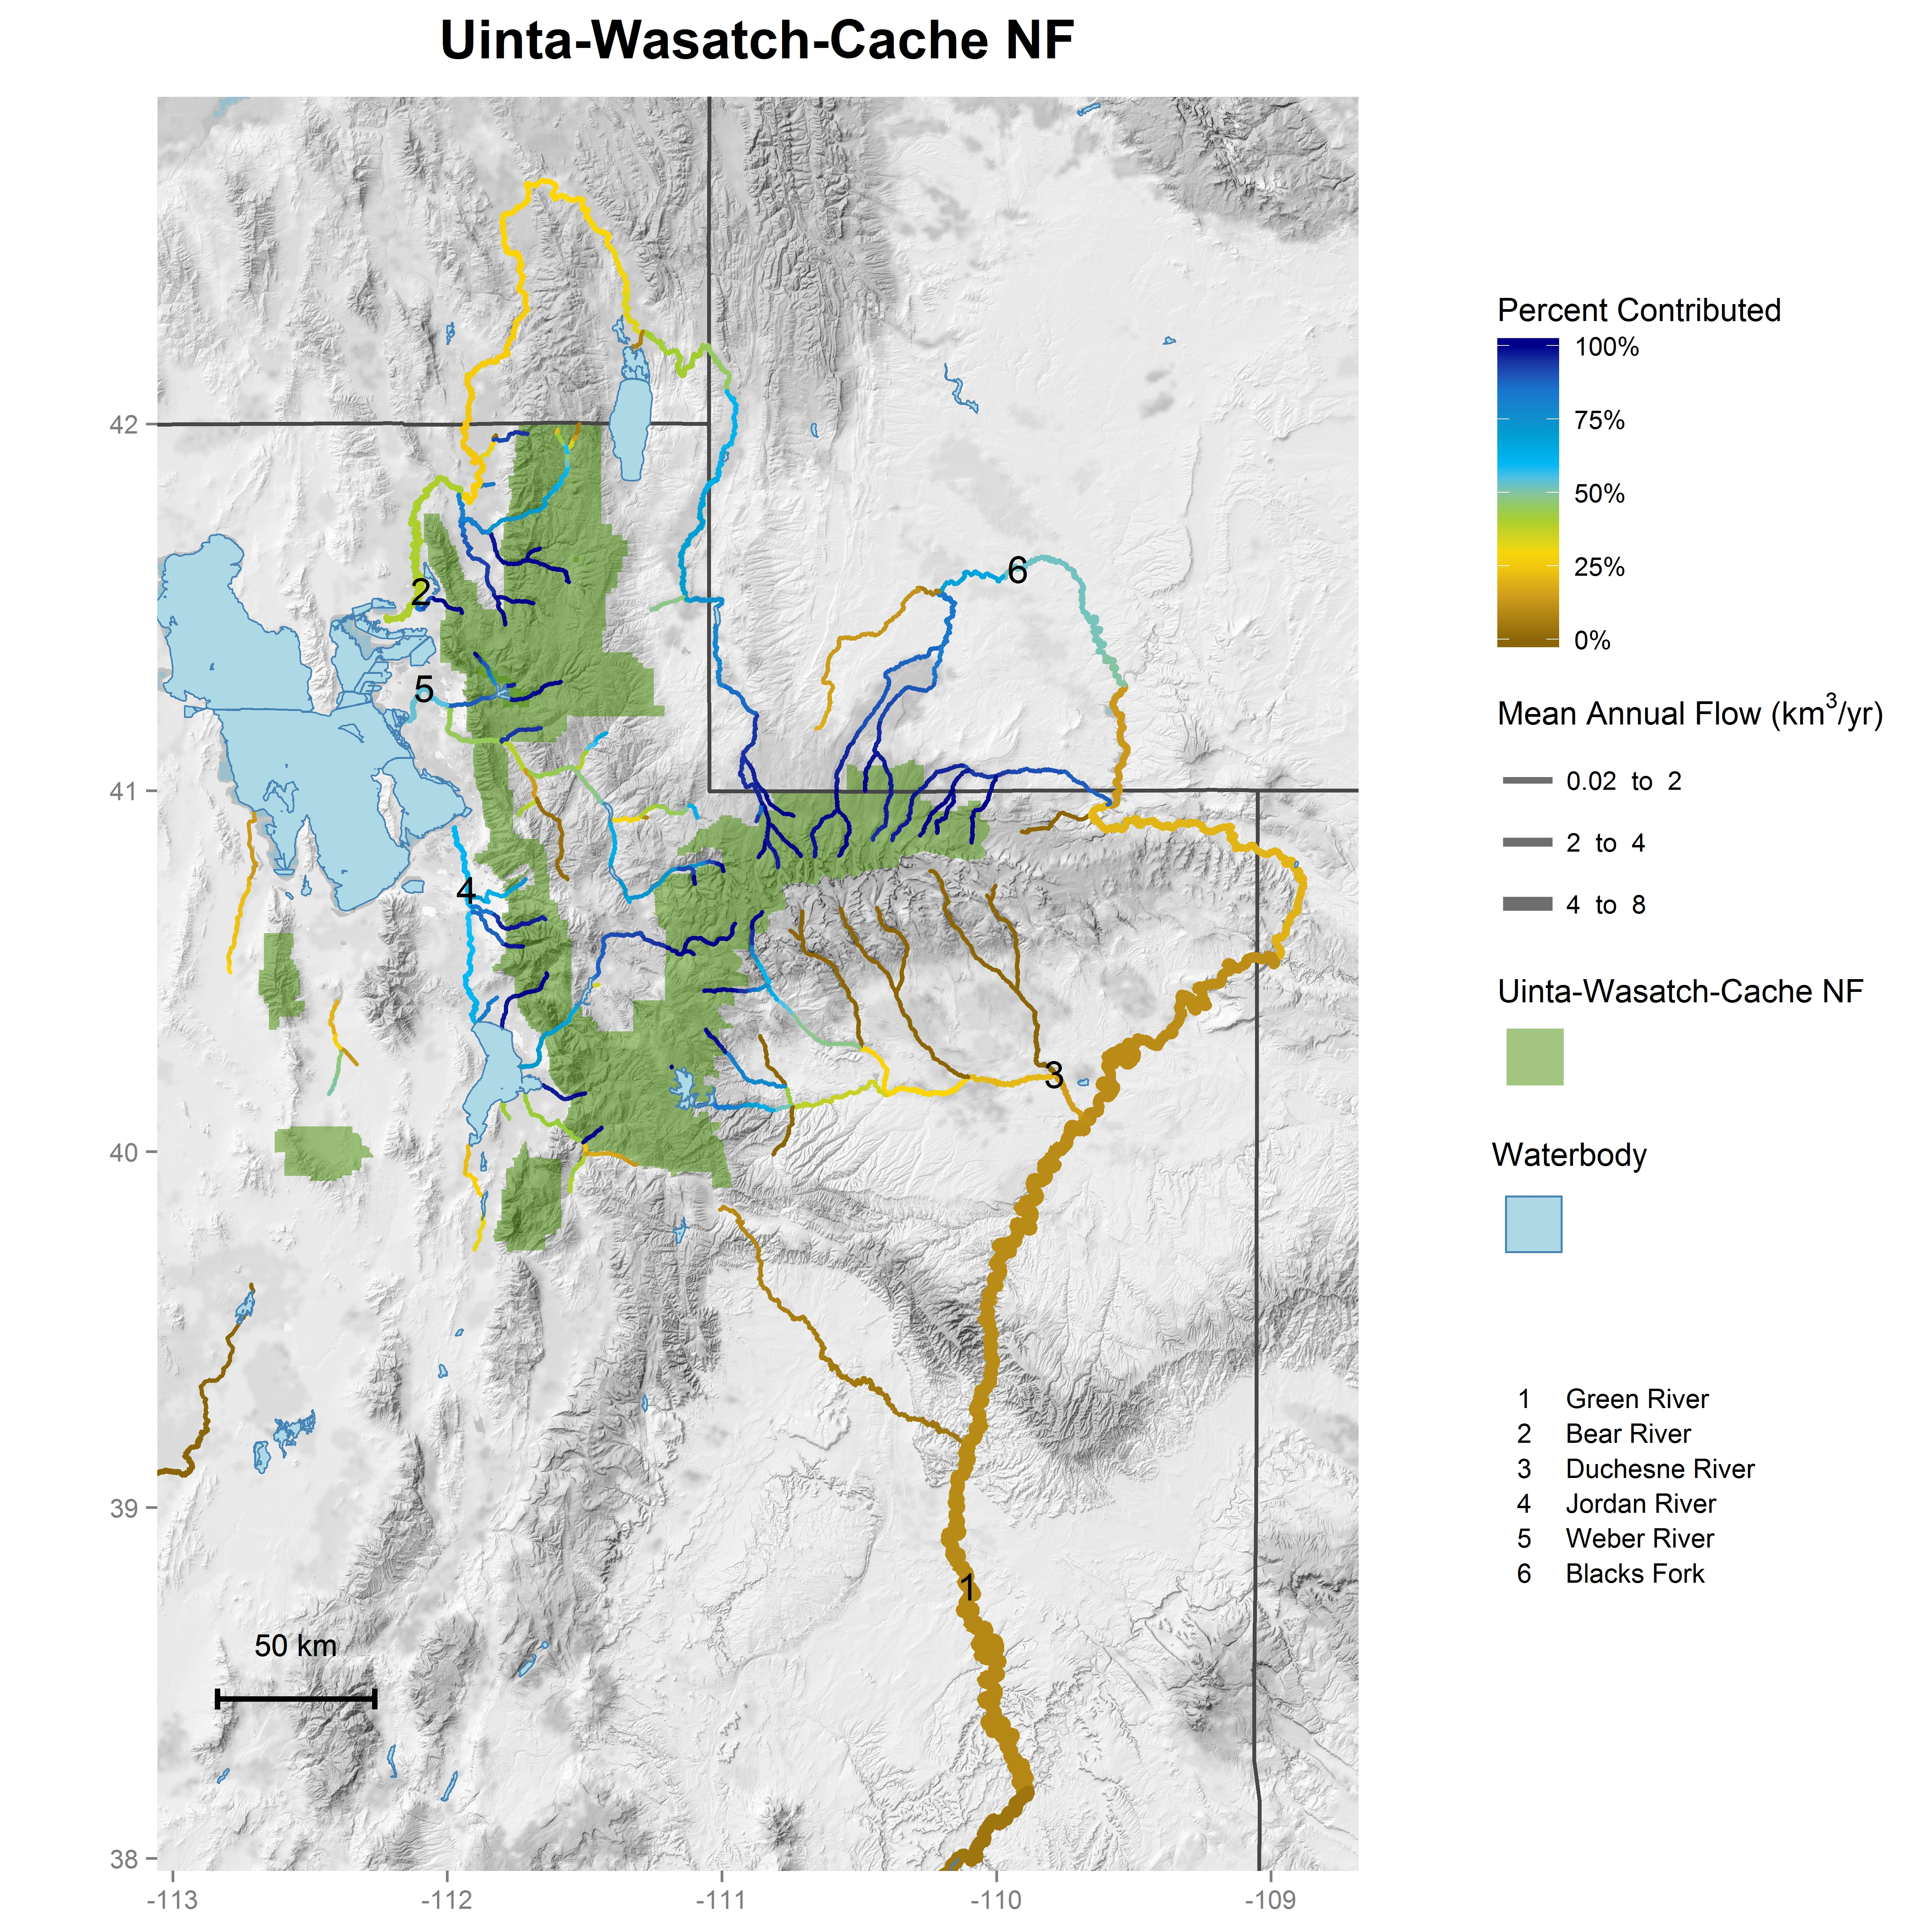 National forest contributions to streamflow: Intermountain ... on uinta national forest map, fishlake national forest map, apache national forest map, utah dixie national forest map, se id national forest map, chattanooga national forest map, wayne national forest trail map, united states national forest map, oklahoma national forest map, roosevelt national forest trail map, caribou national forest map, shawnee national forest map,